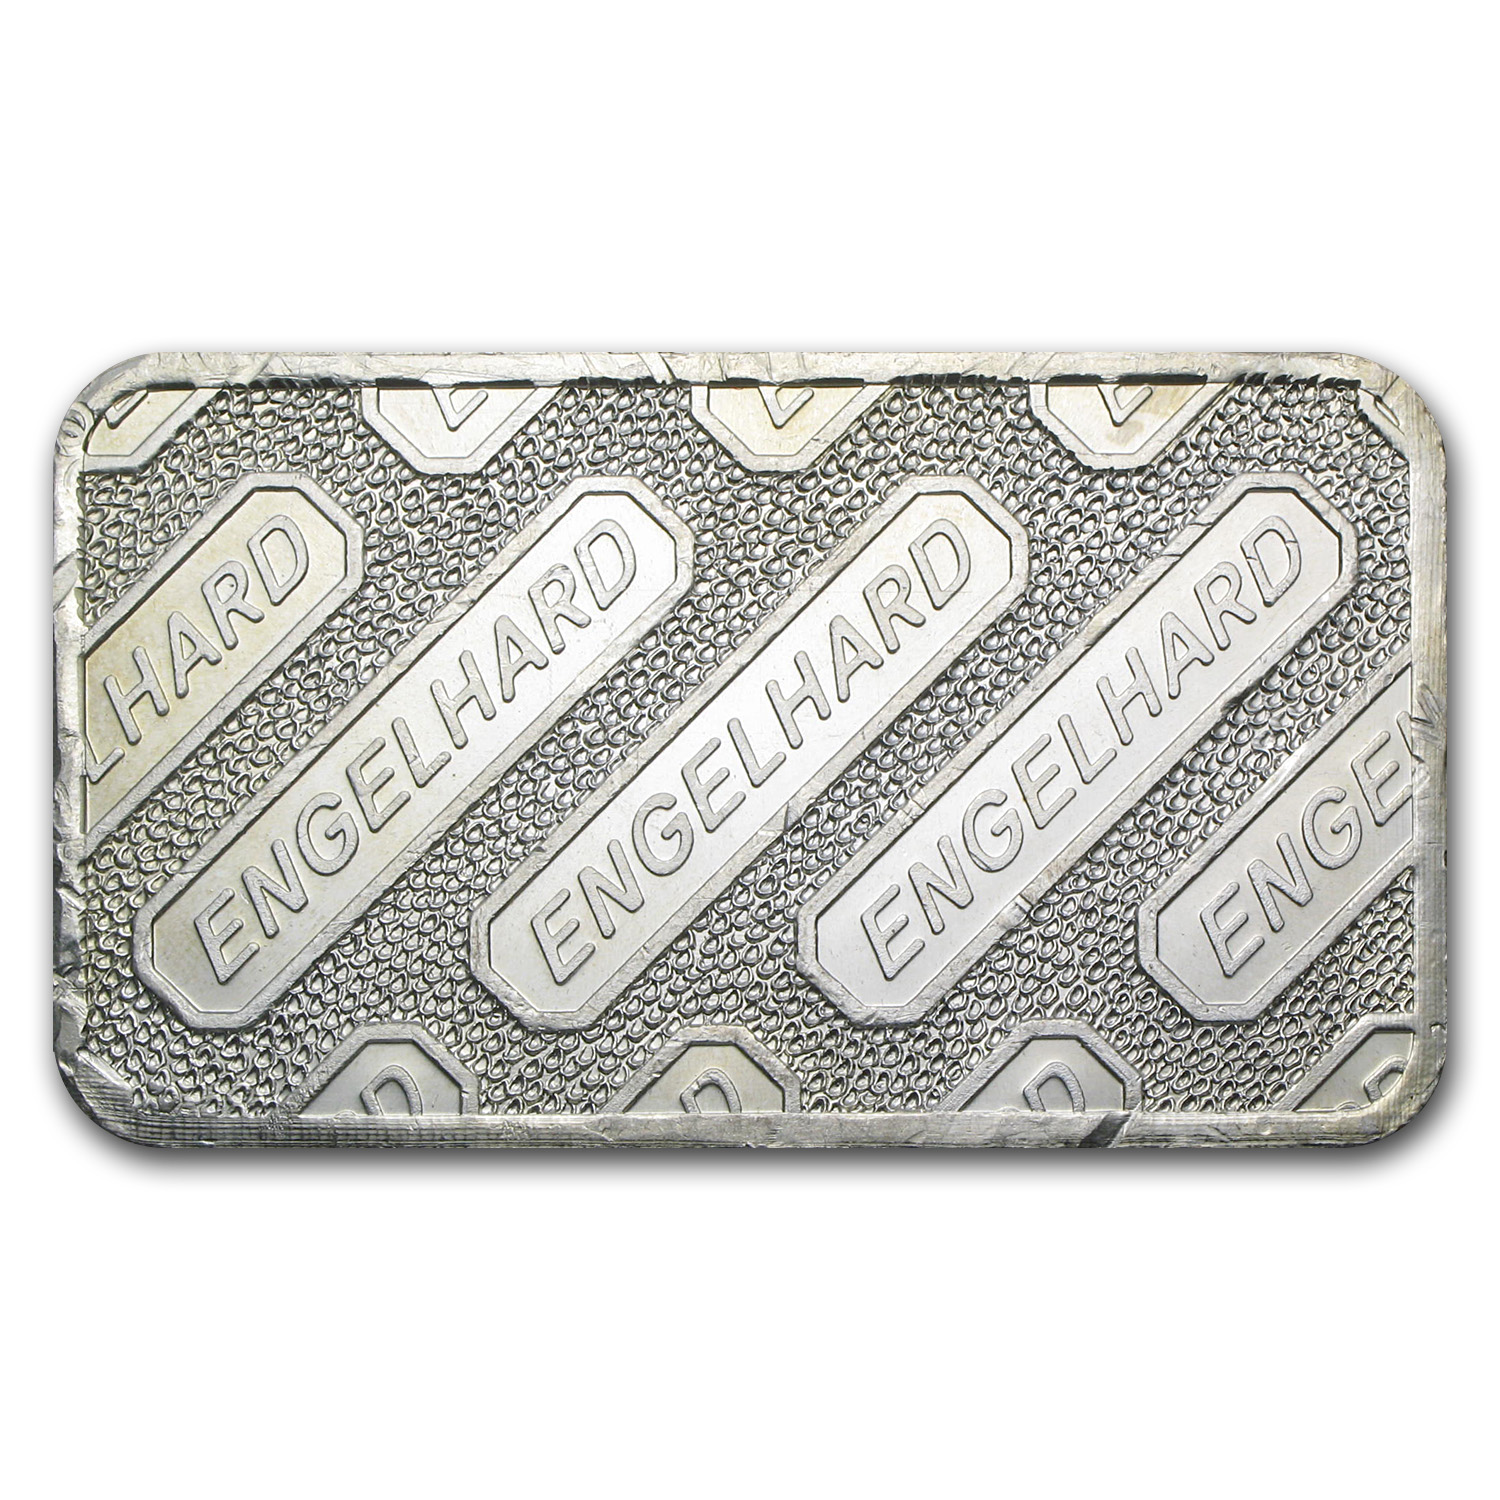 10 oz Silver Bar - Engelhard (Wide, Struck, Logo Reverse)